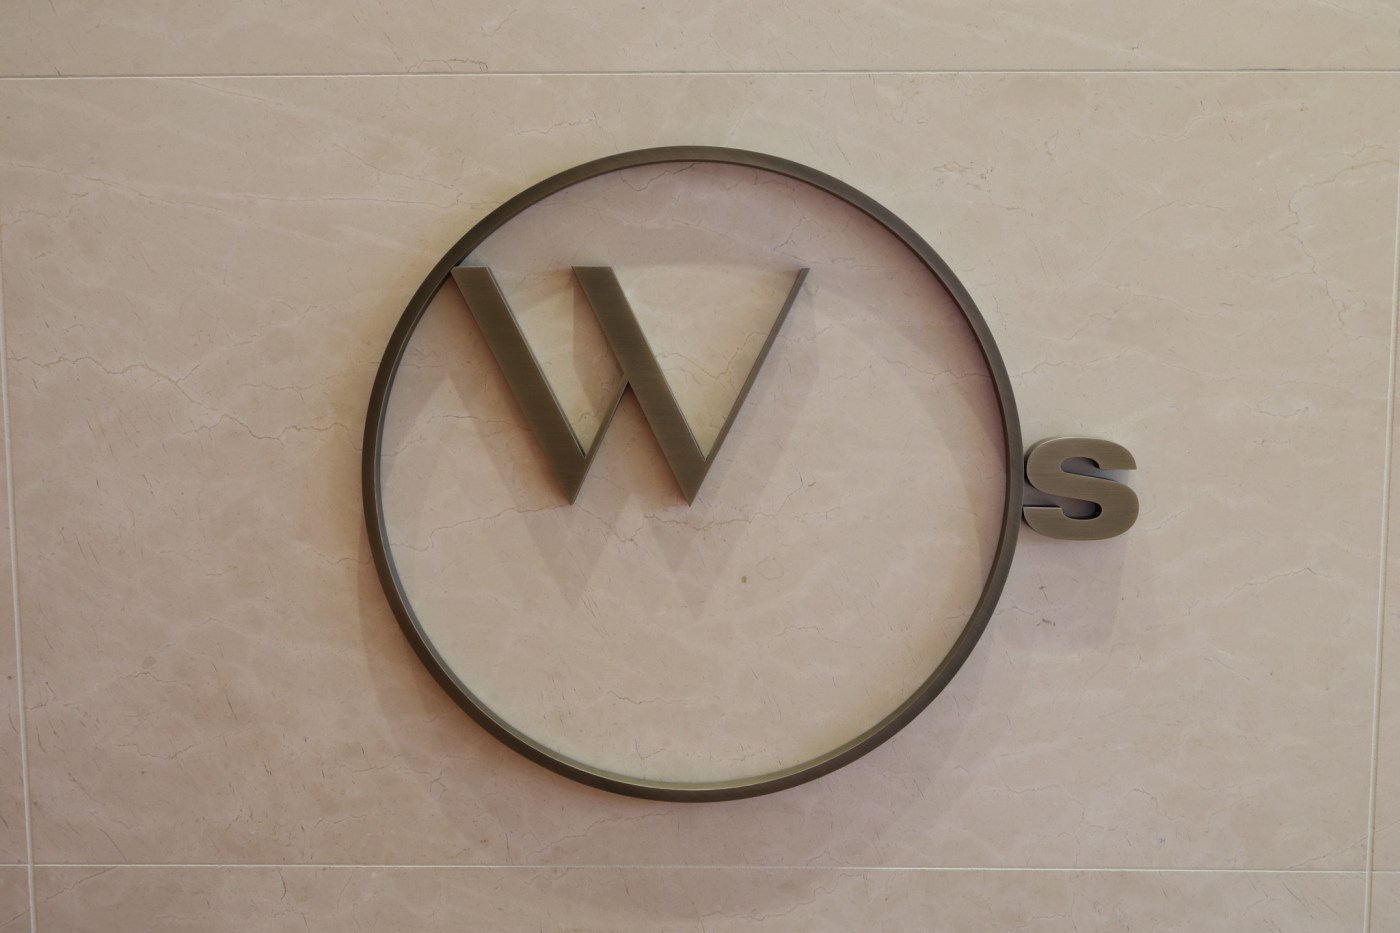 Watches of Switzerland logo on Spanish marble exterior wall